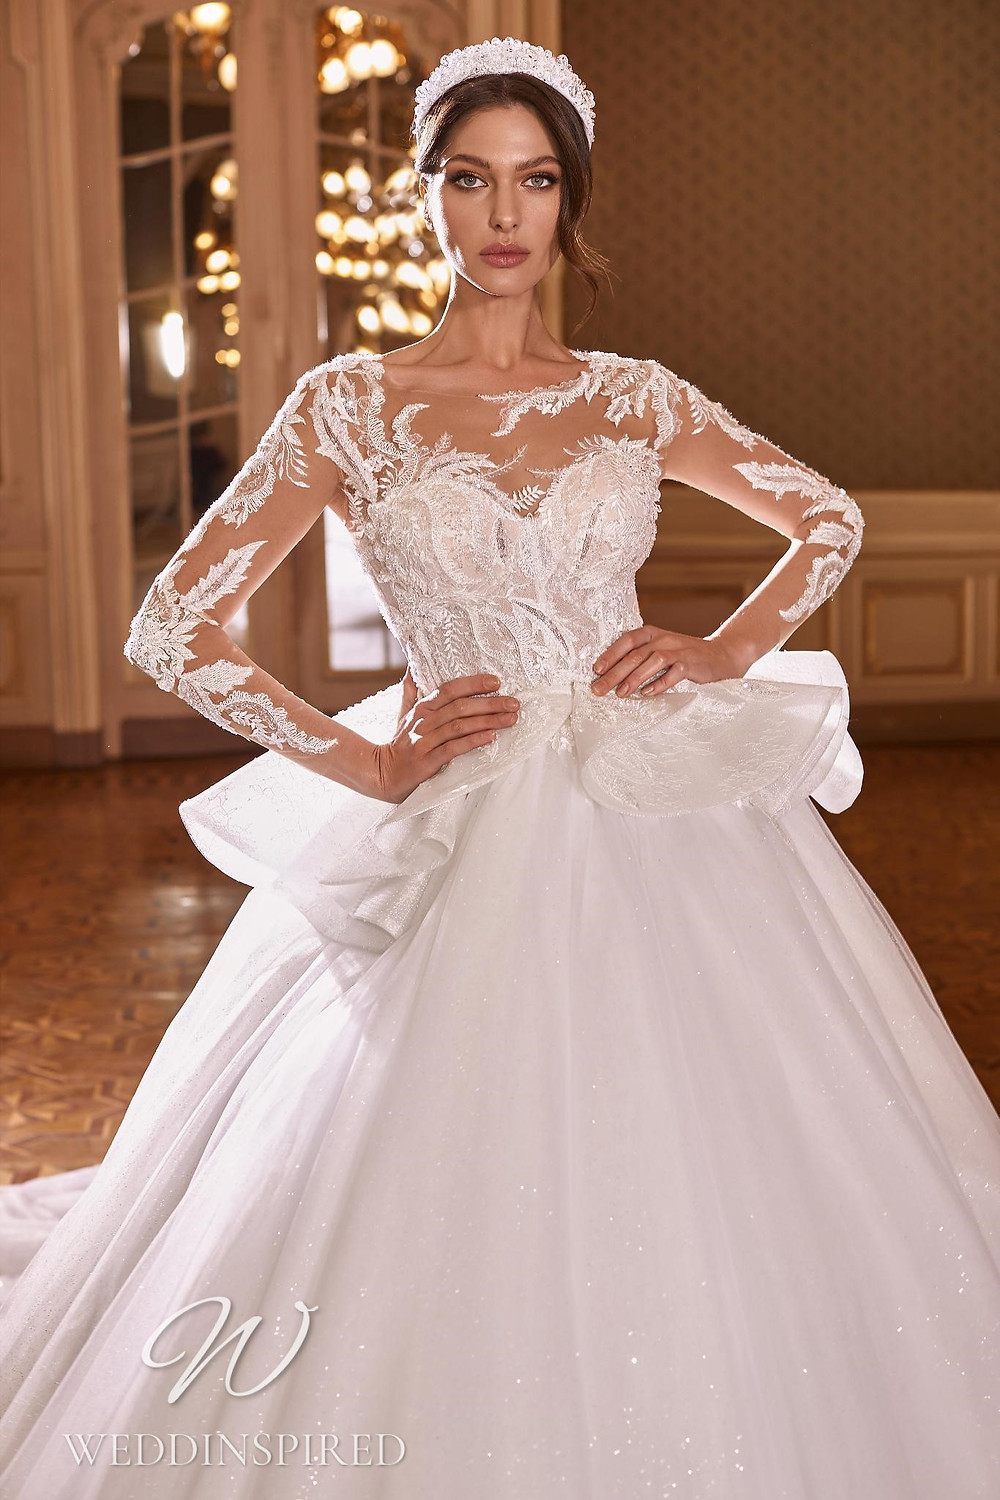 A Ricca Sposa 2022 lace and tulle princess wedding dress with long sleeves